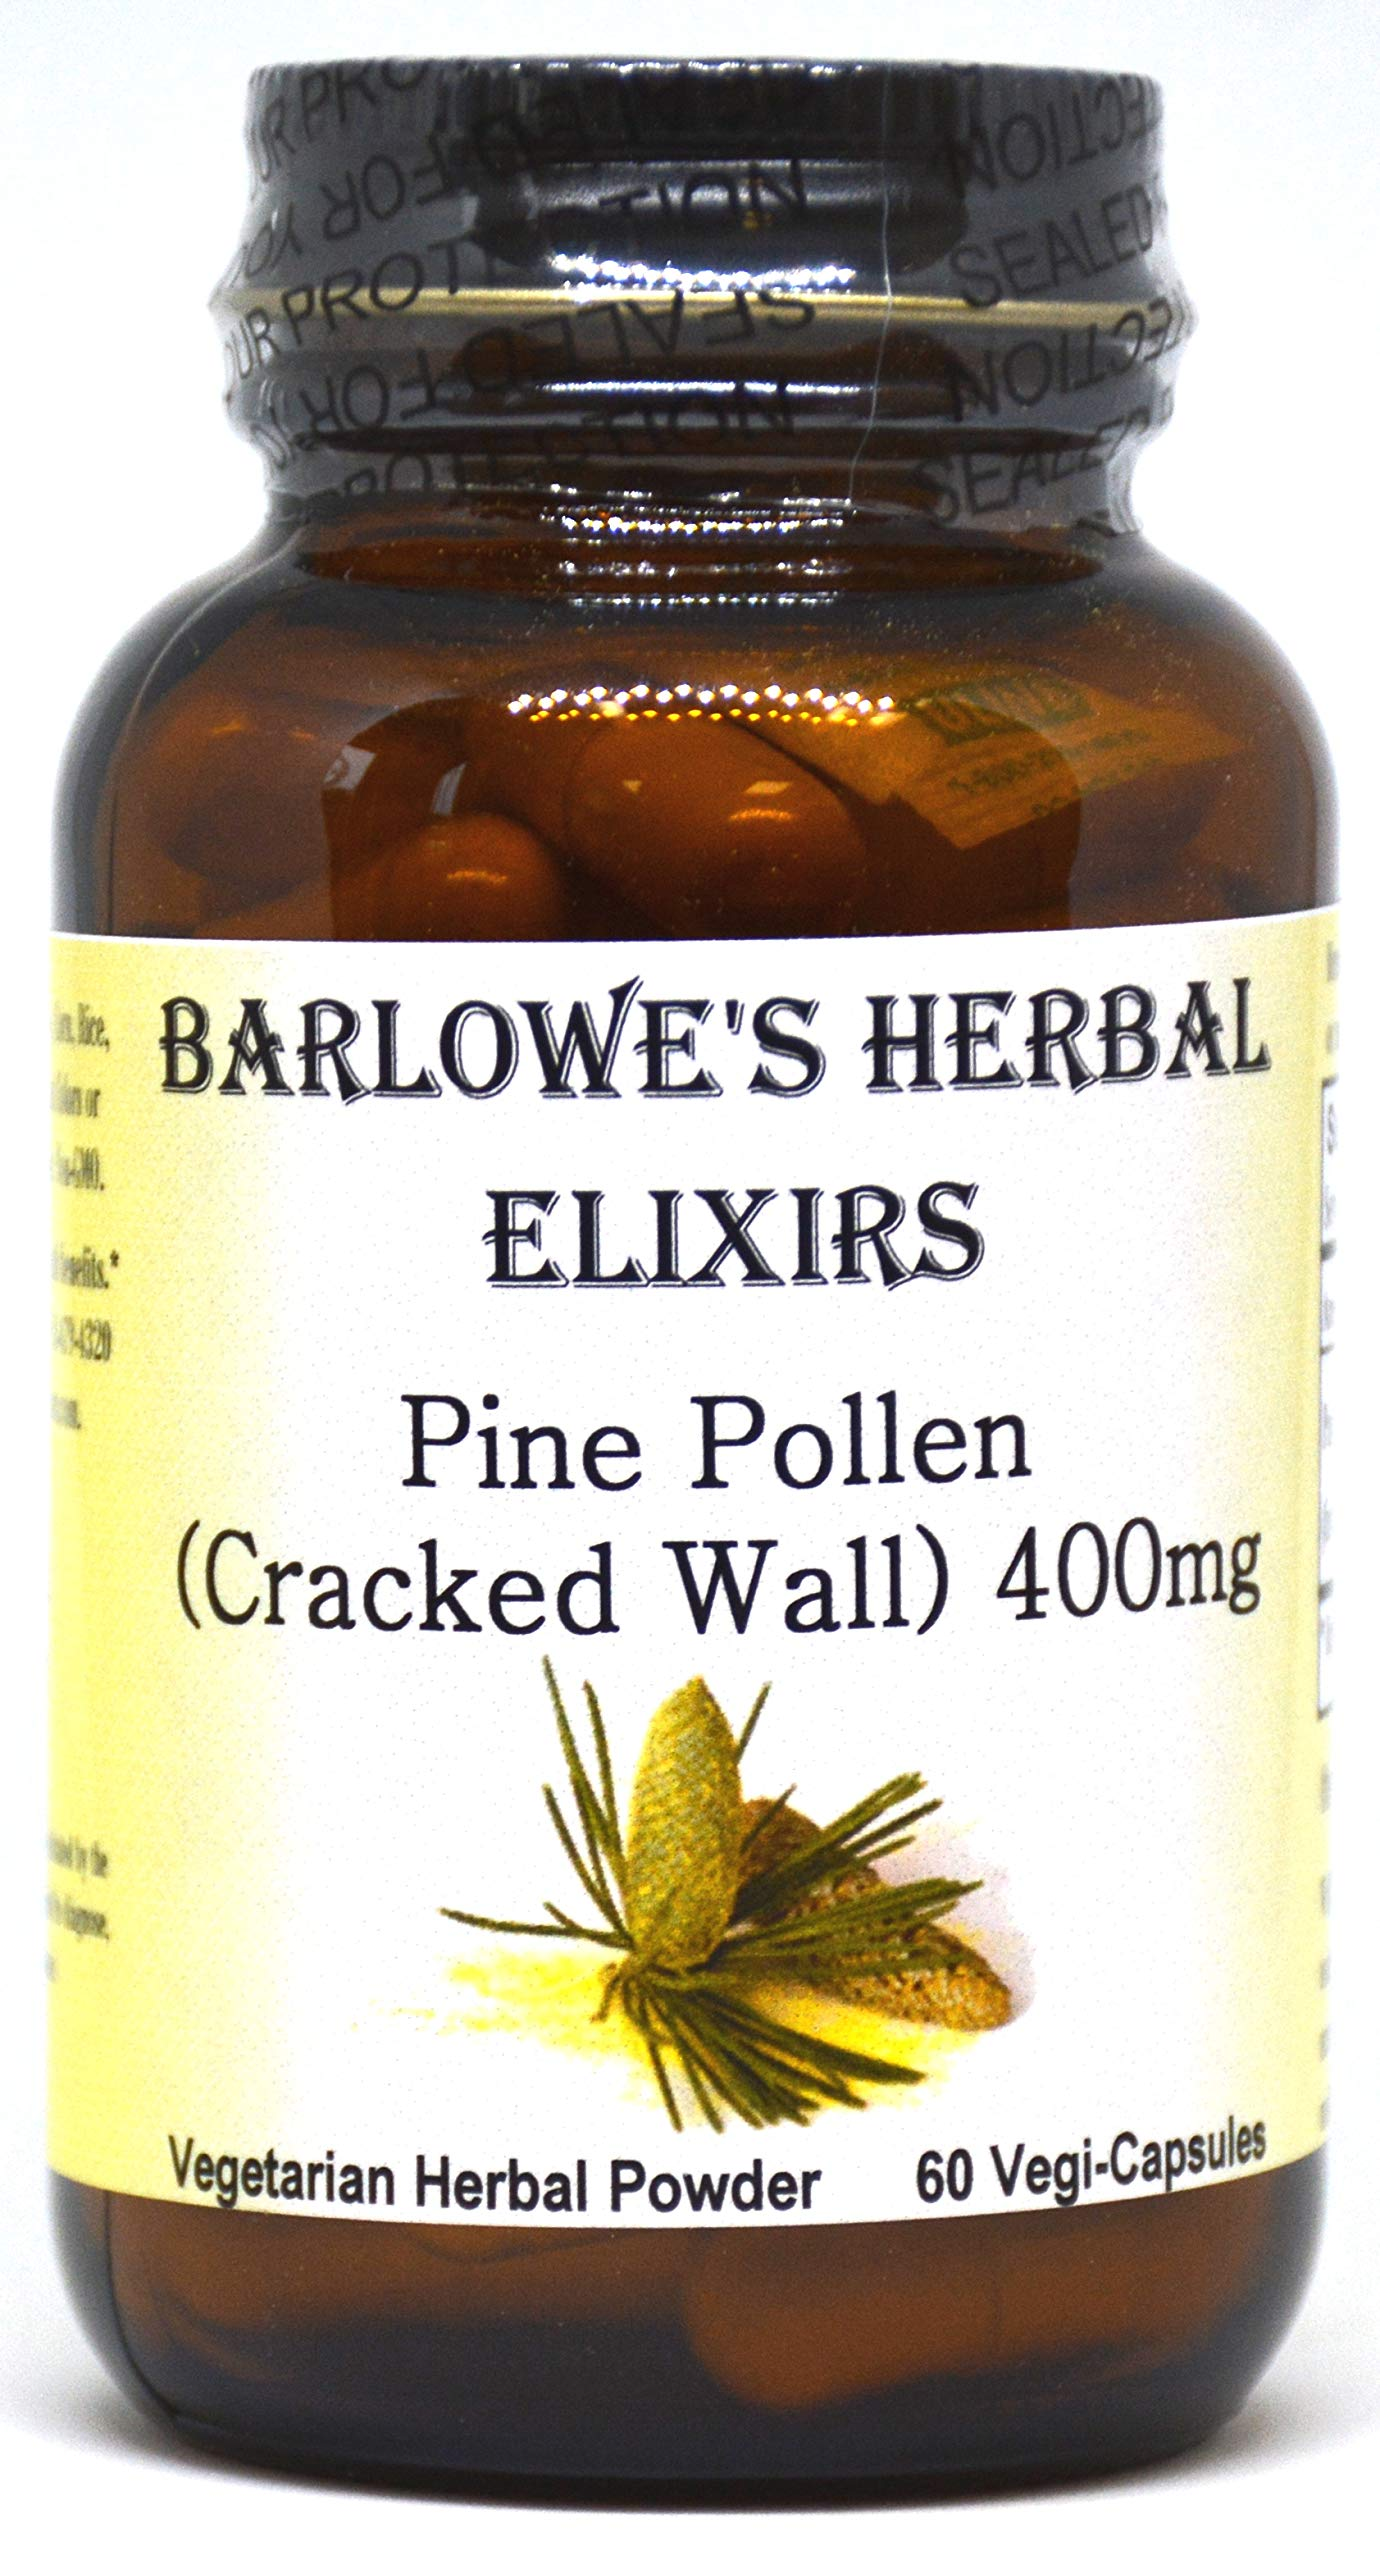 Pine Pollen Cracked Wall Powder - 60 400mg VegiCaps - Stearate Free, Bottled in Glass!